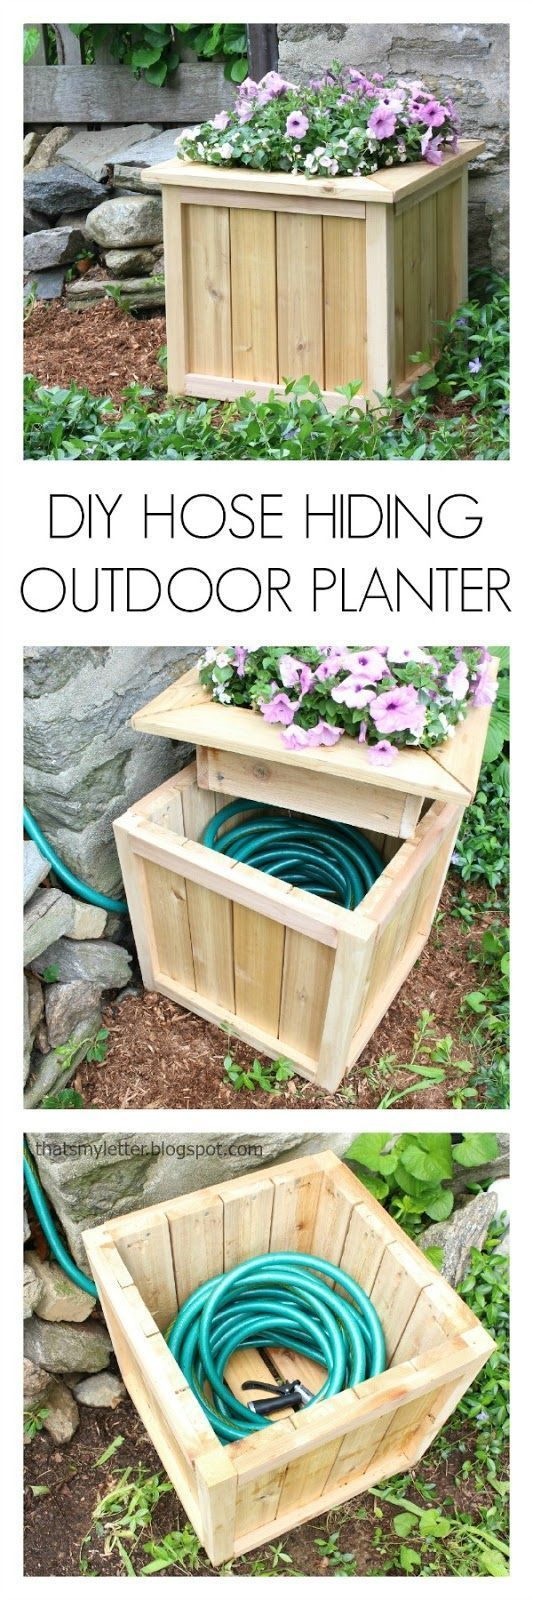 DIY Planter Box with Hidden Hose Storage.